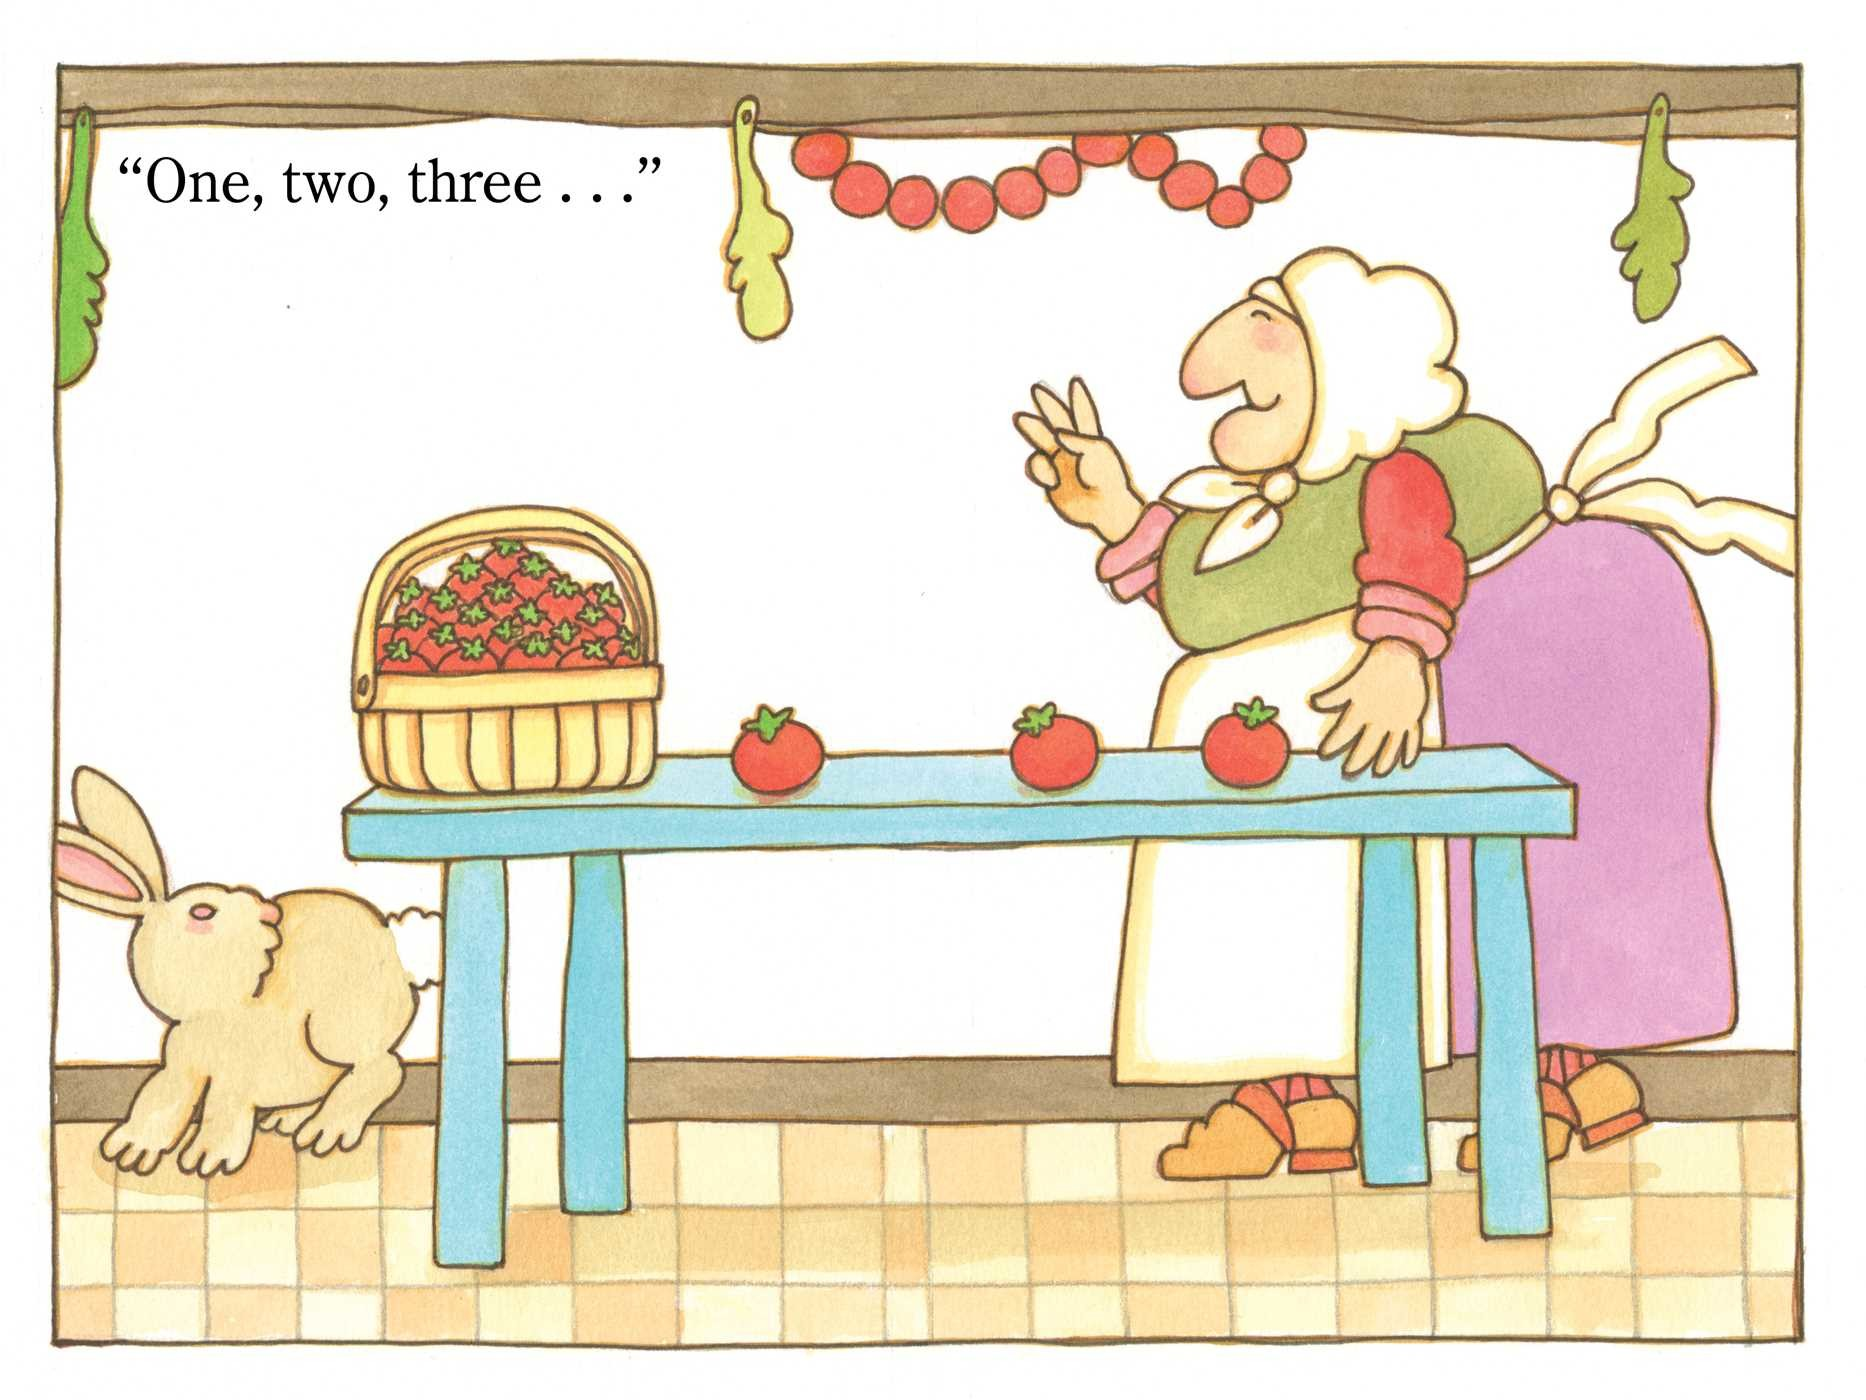 Strega nona and her tomatoes 9781481481342.in05